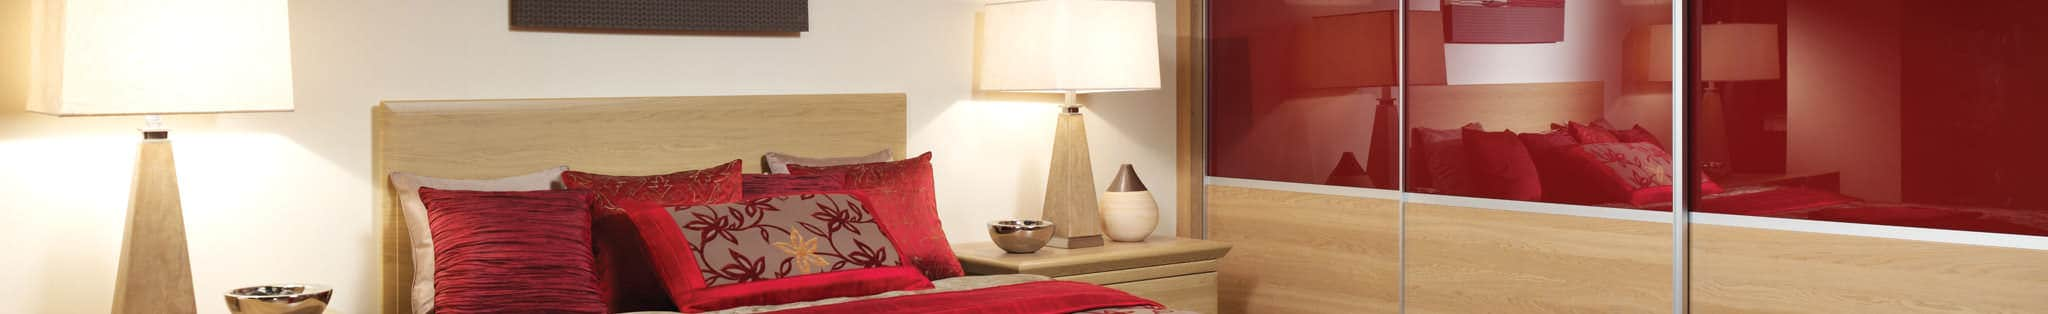 Fitted bedroom with details in red